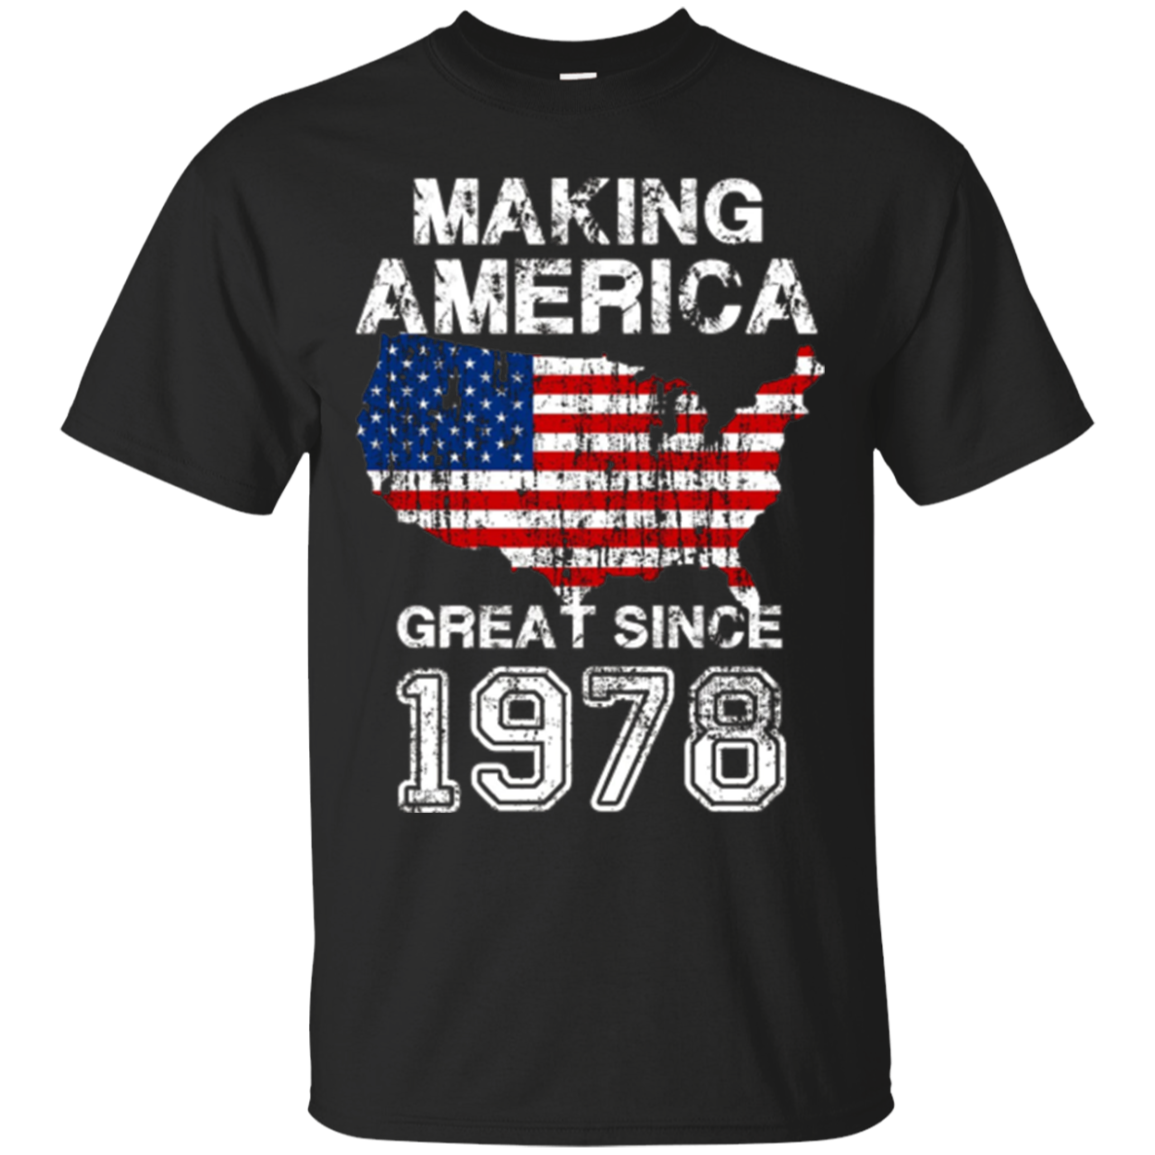 39th Birthday Gift Shirt for Conservative Man or Woman